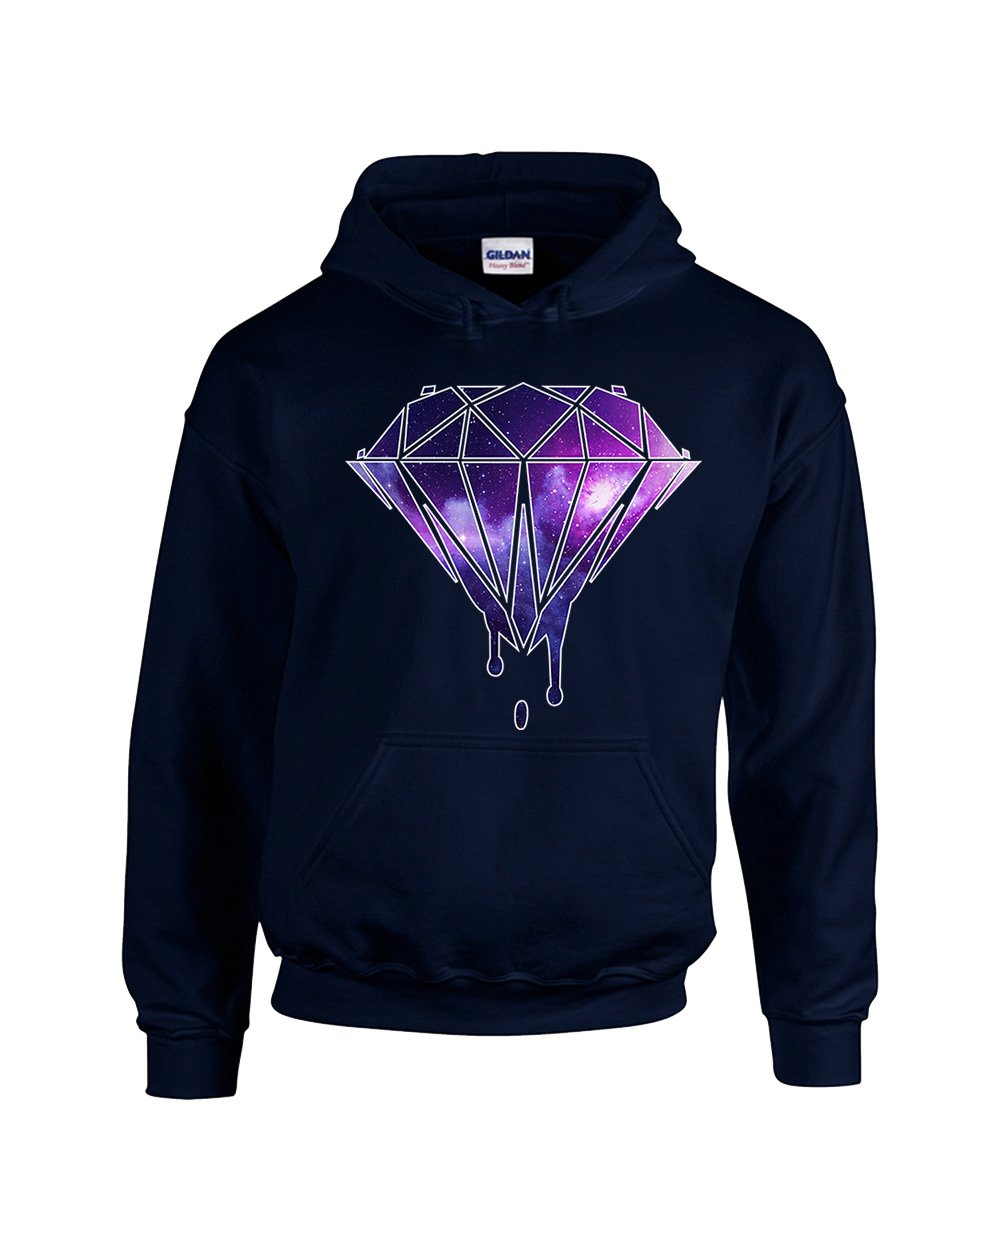 Mickey Diamond Galaxy Colors Disney Unisex Pullover Hoodie Hooded Sweatshirt(Navy,X-Large)